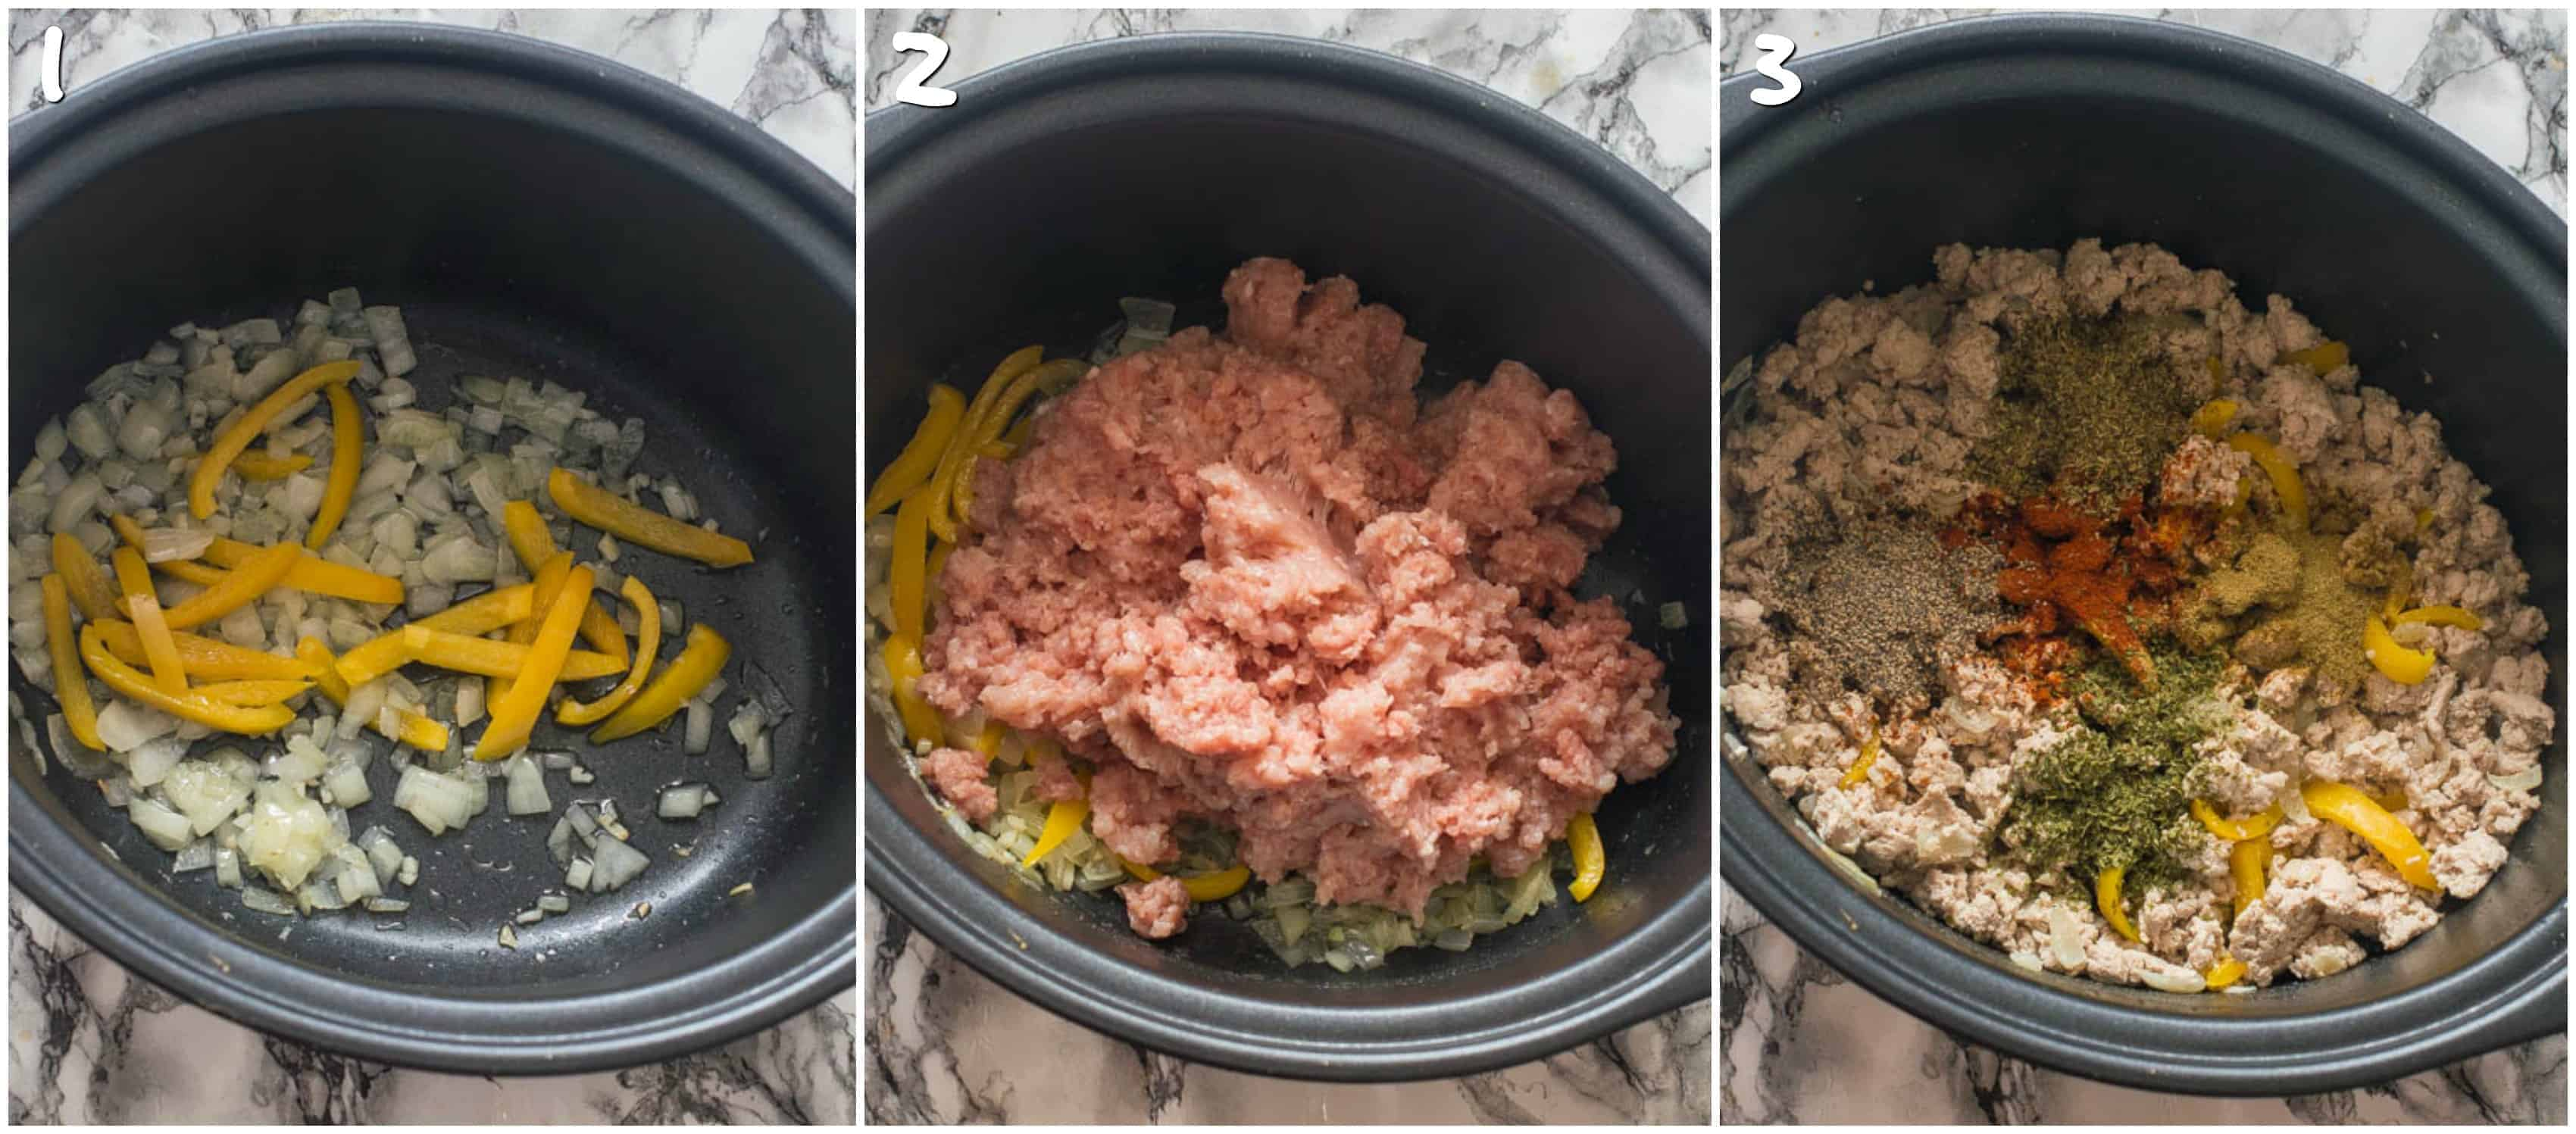 steps 1-3 sauteing and browning meat